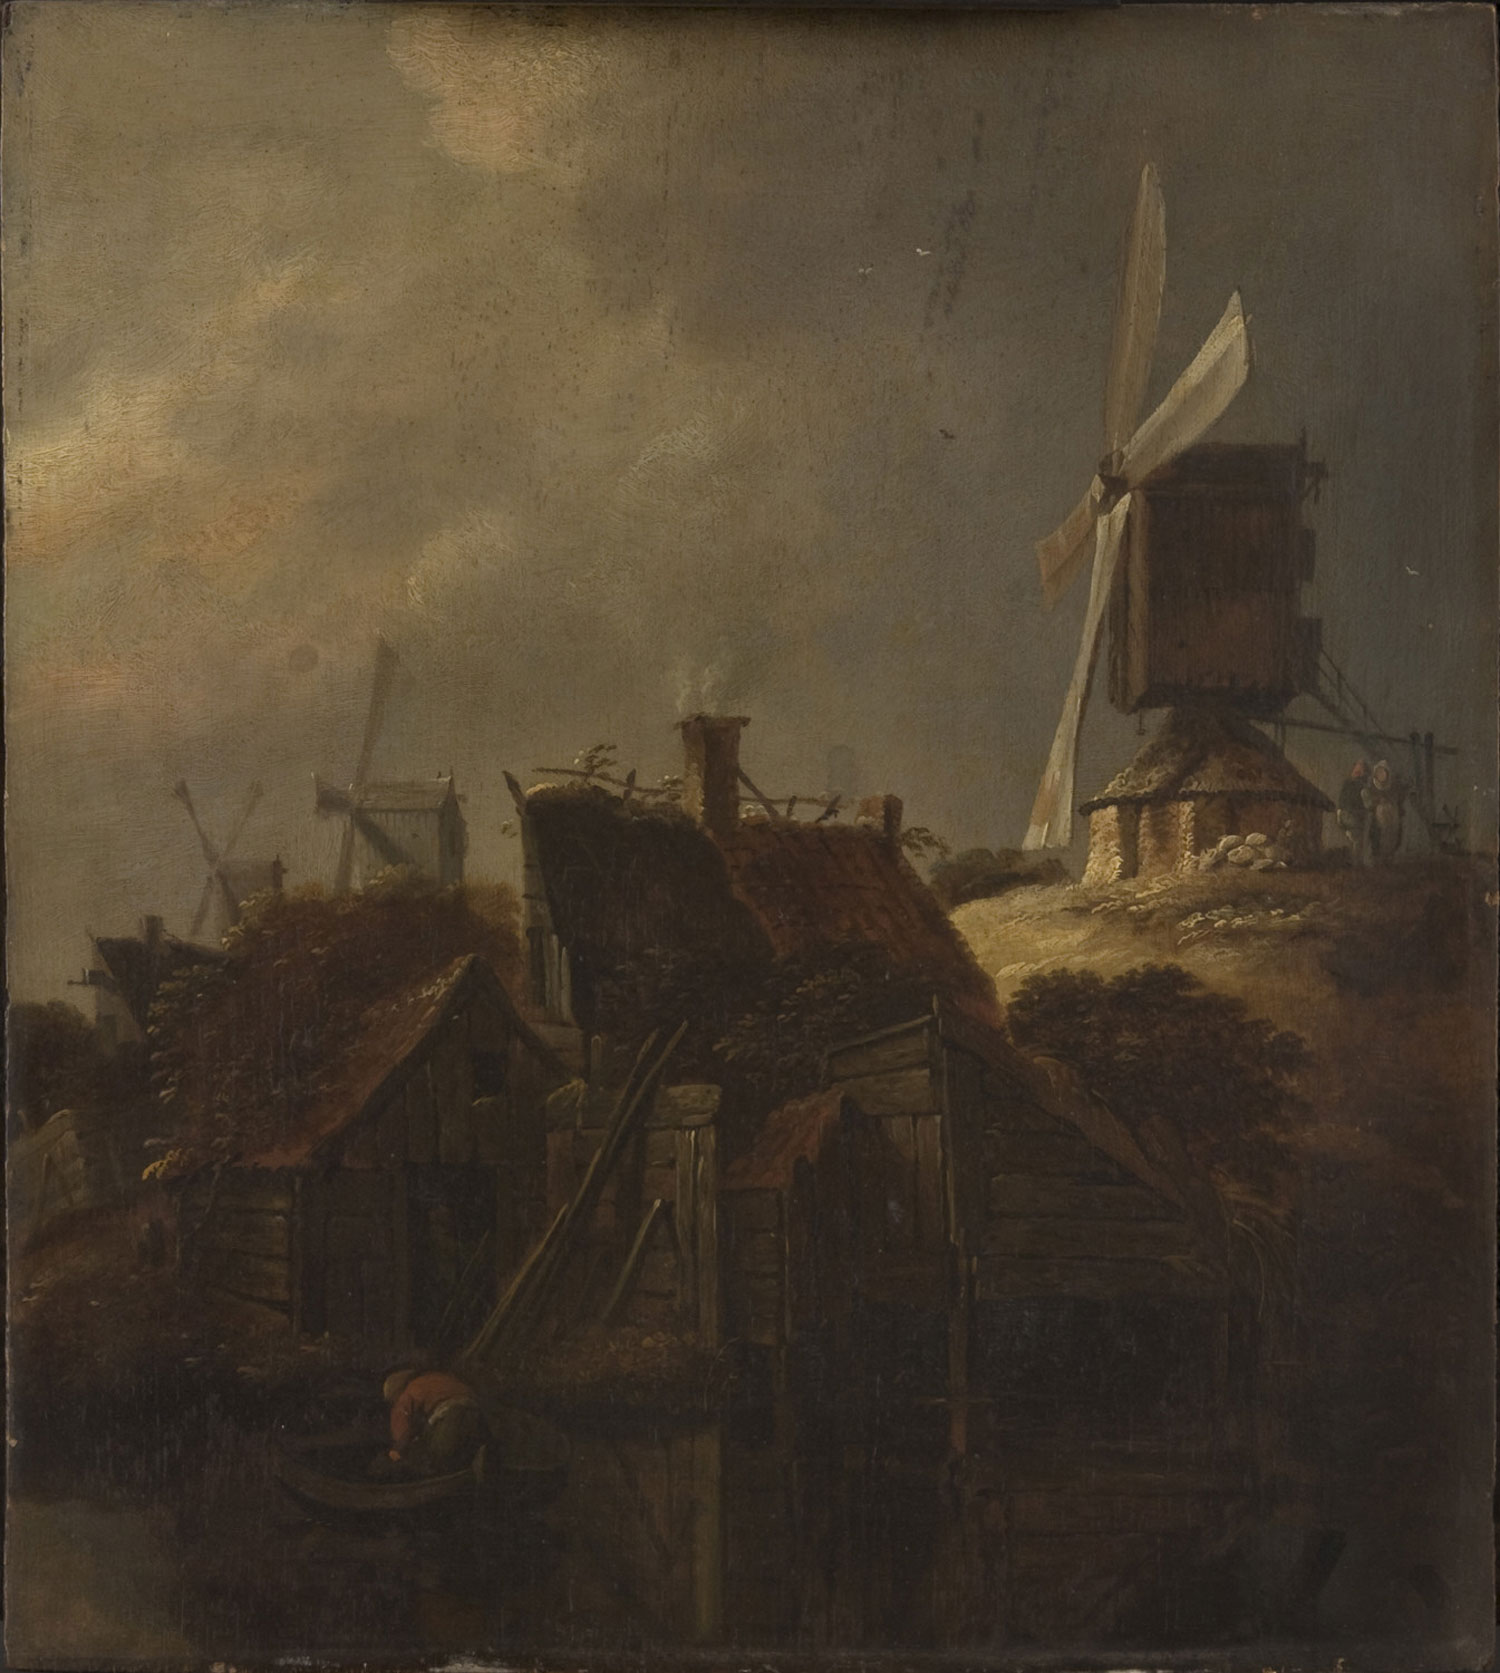 Windmills and Houses on the Waterside